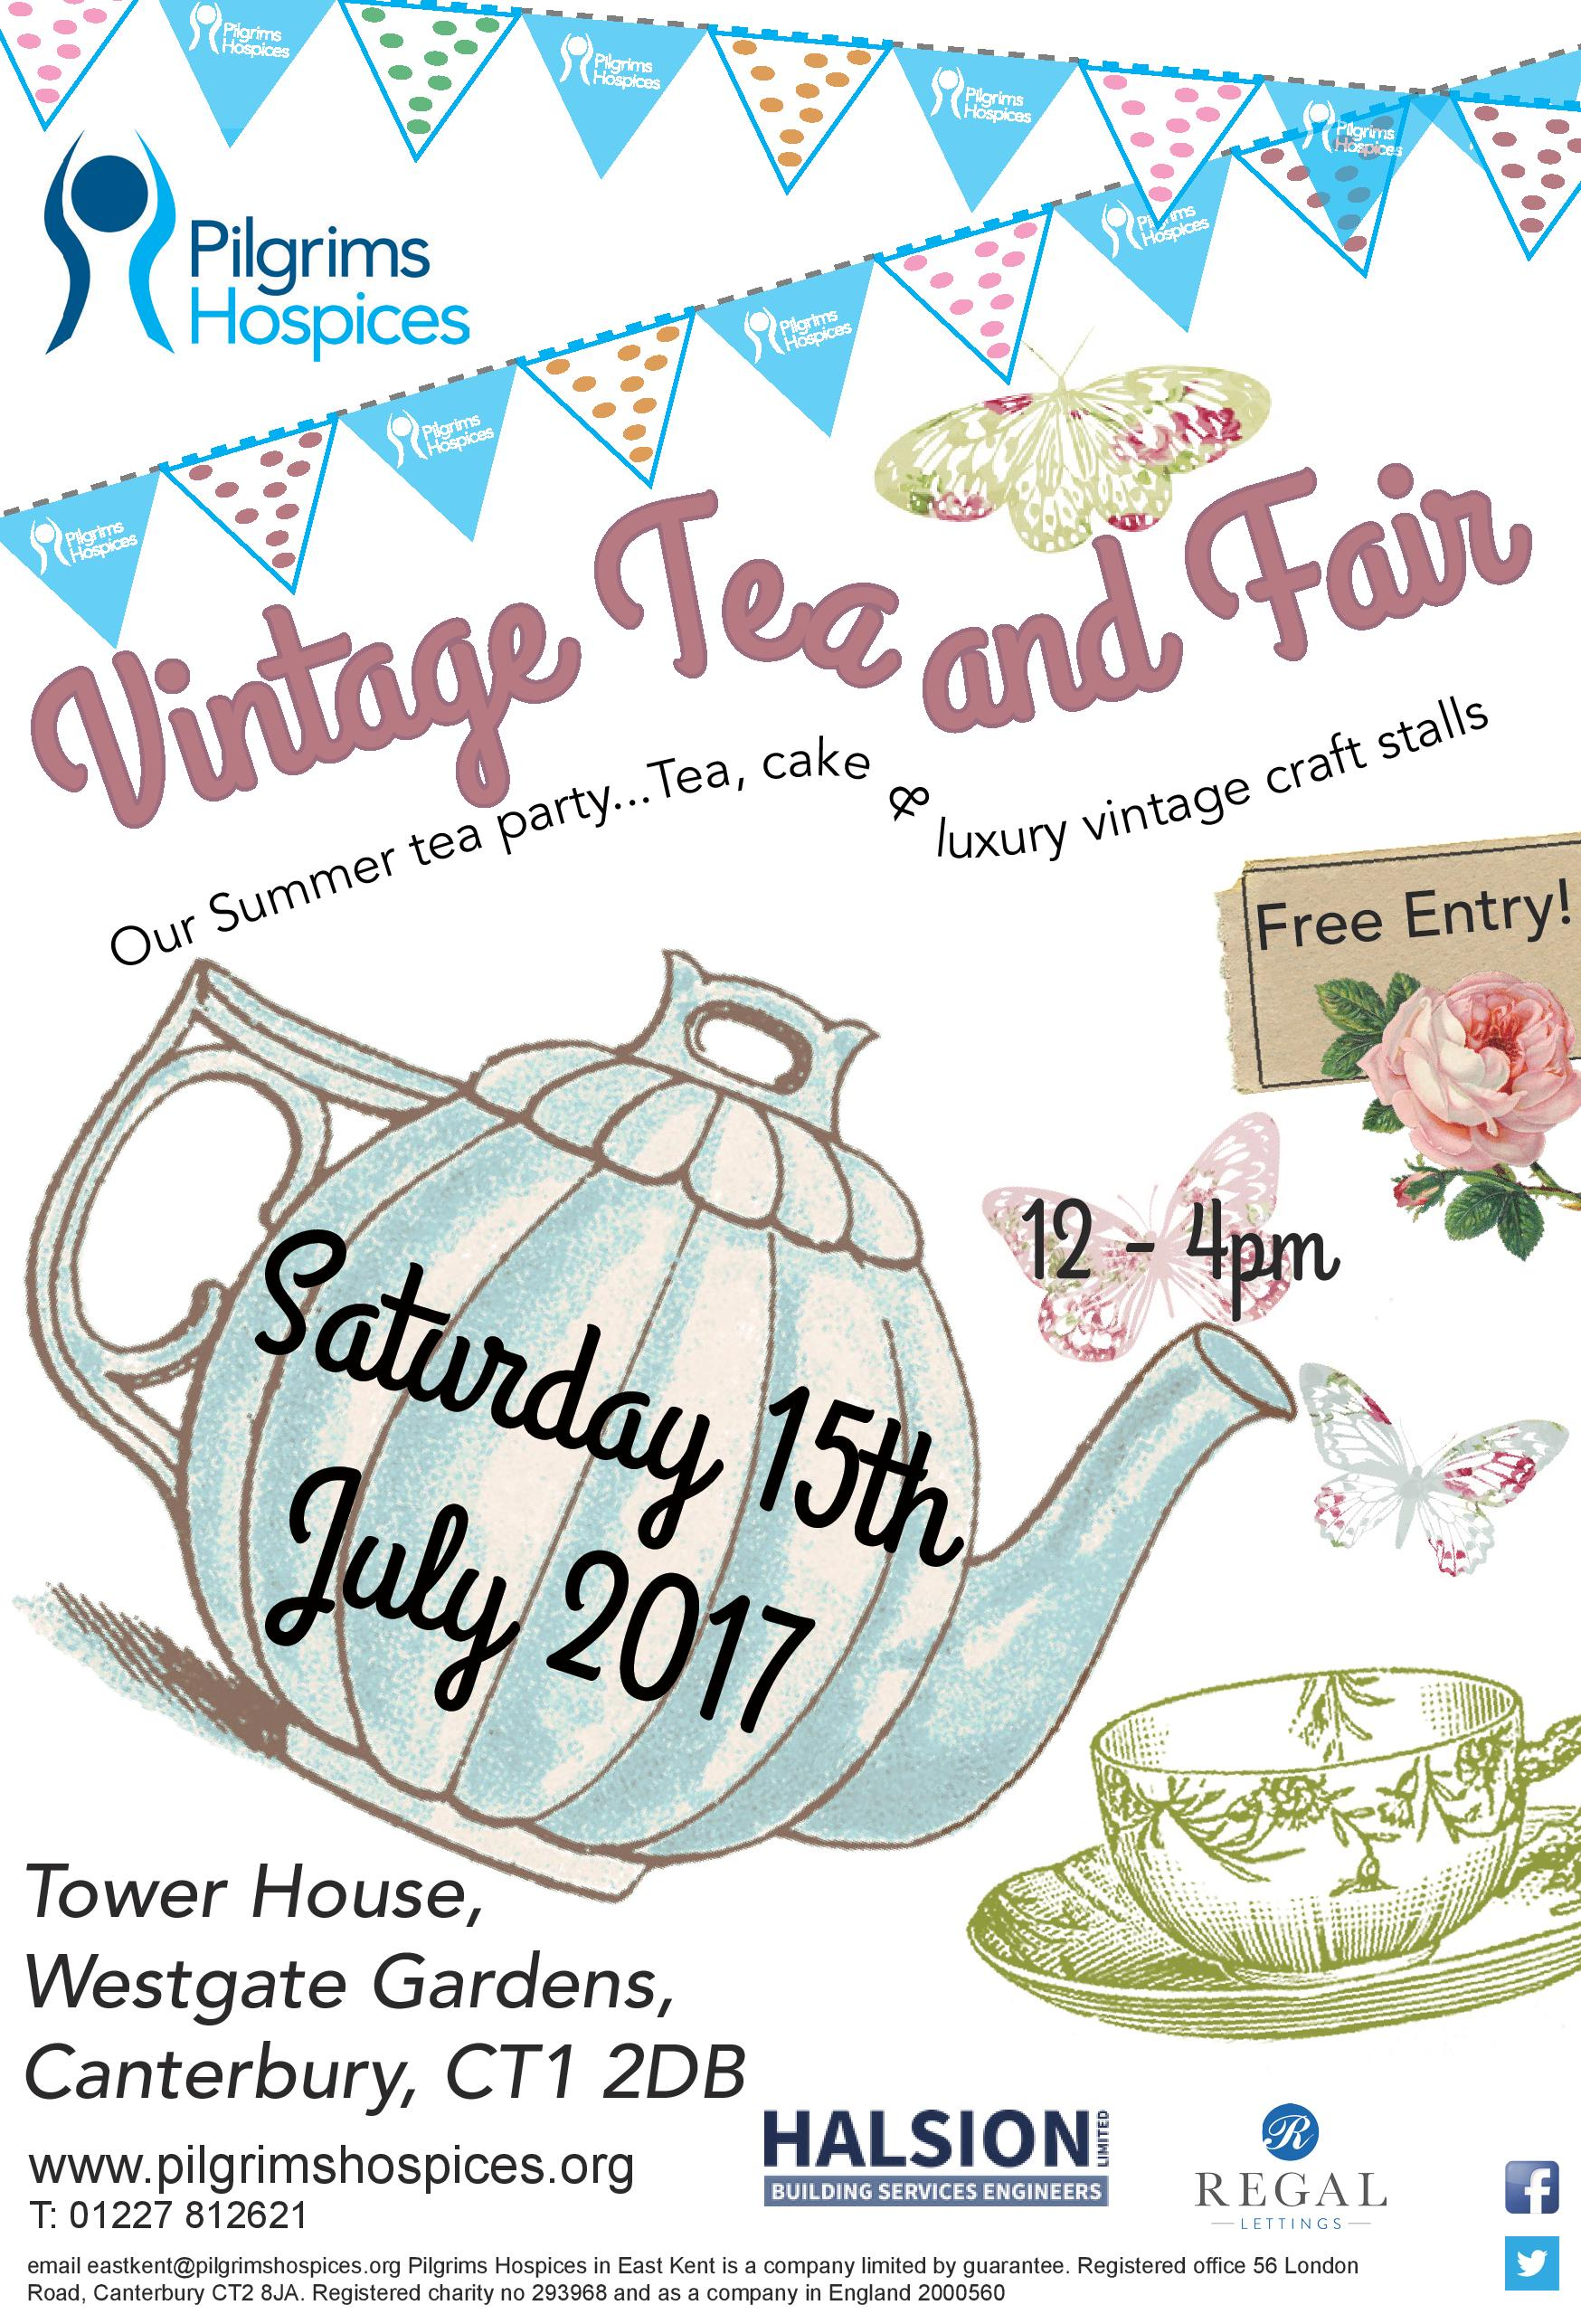 Our continued sponsor of the Pilgrims Hospice – Summer Vintage Tea Fair